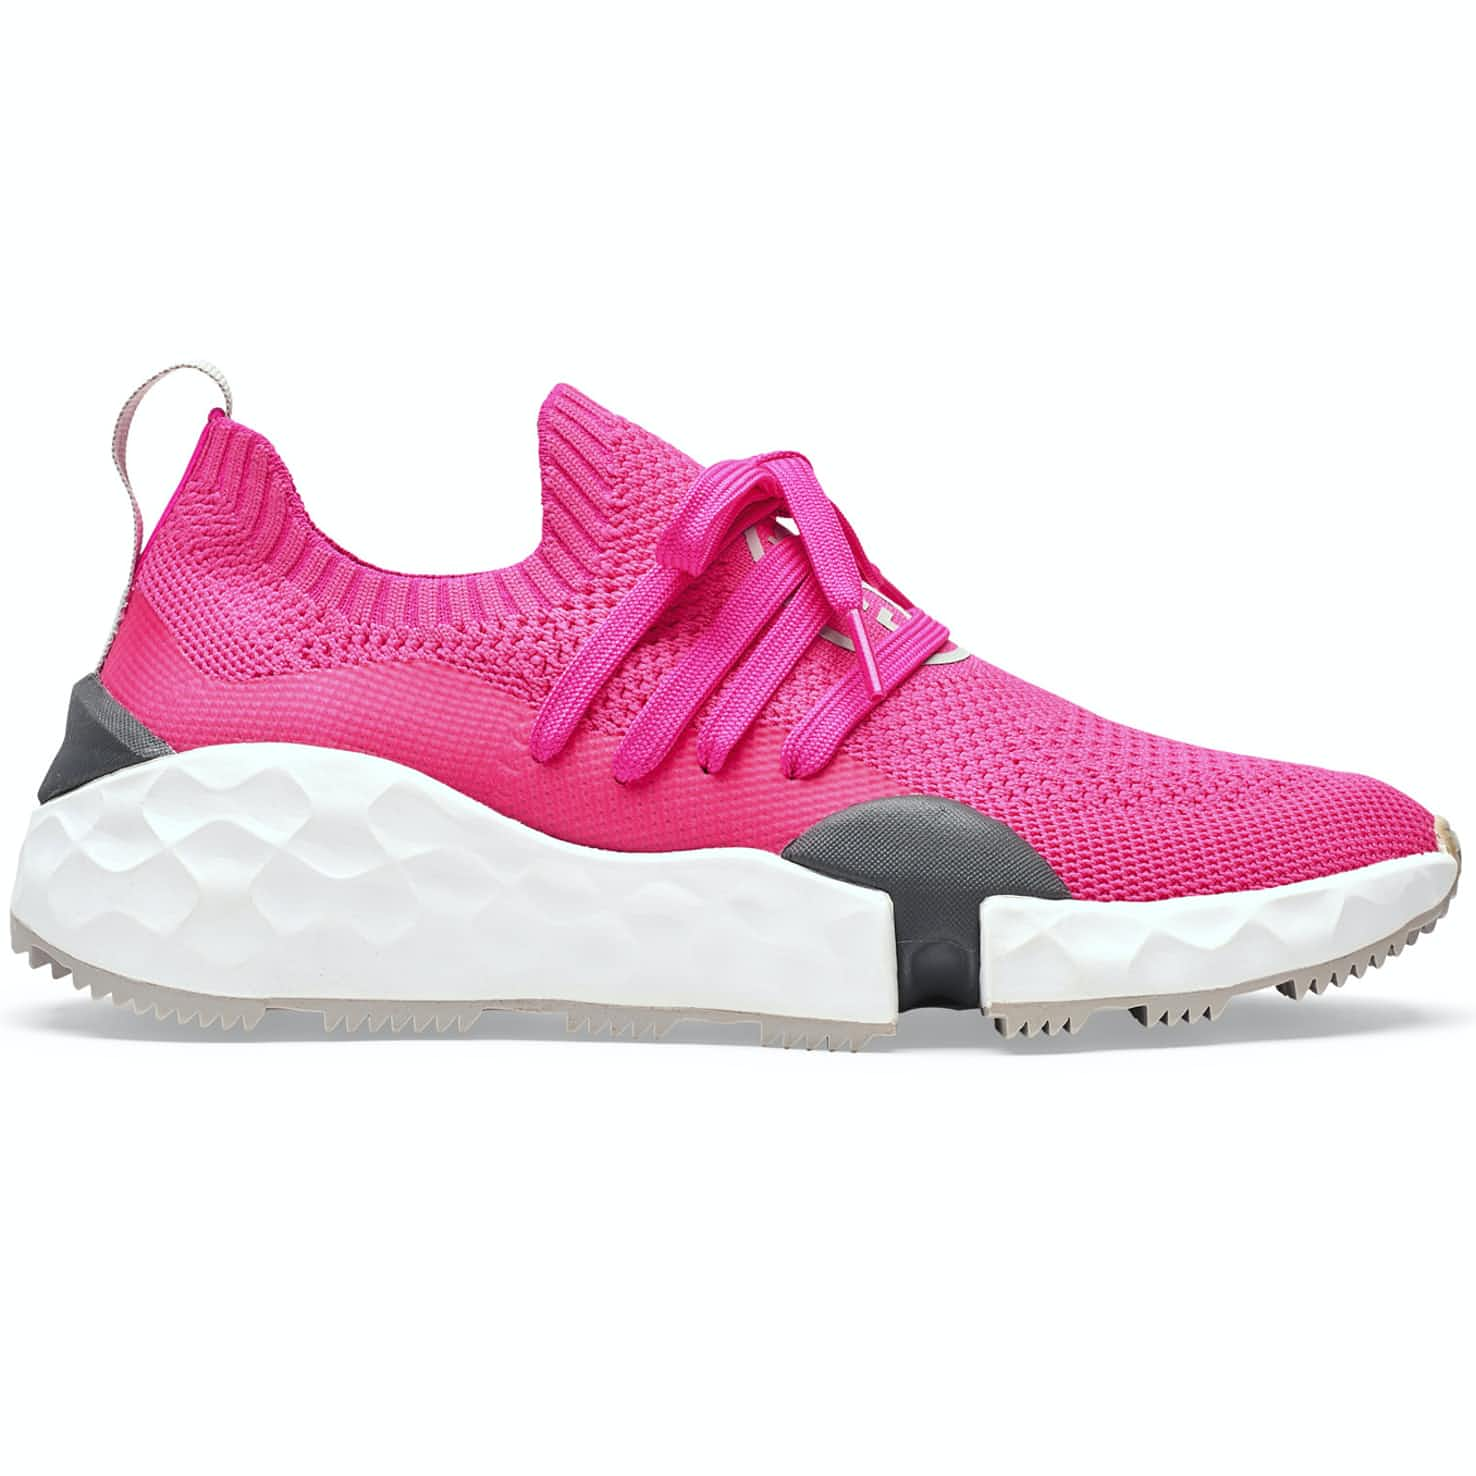 Womens Limited Edition MG4.1 Day Glo Pink - SS20